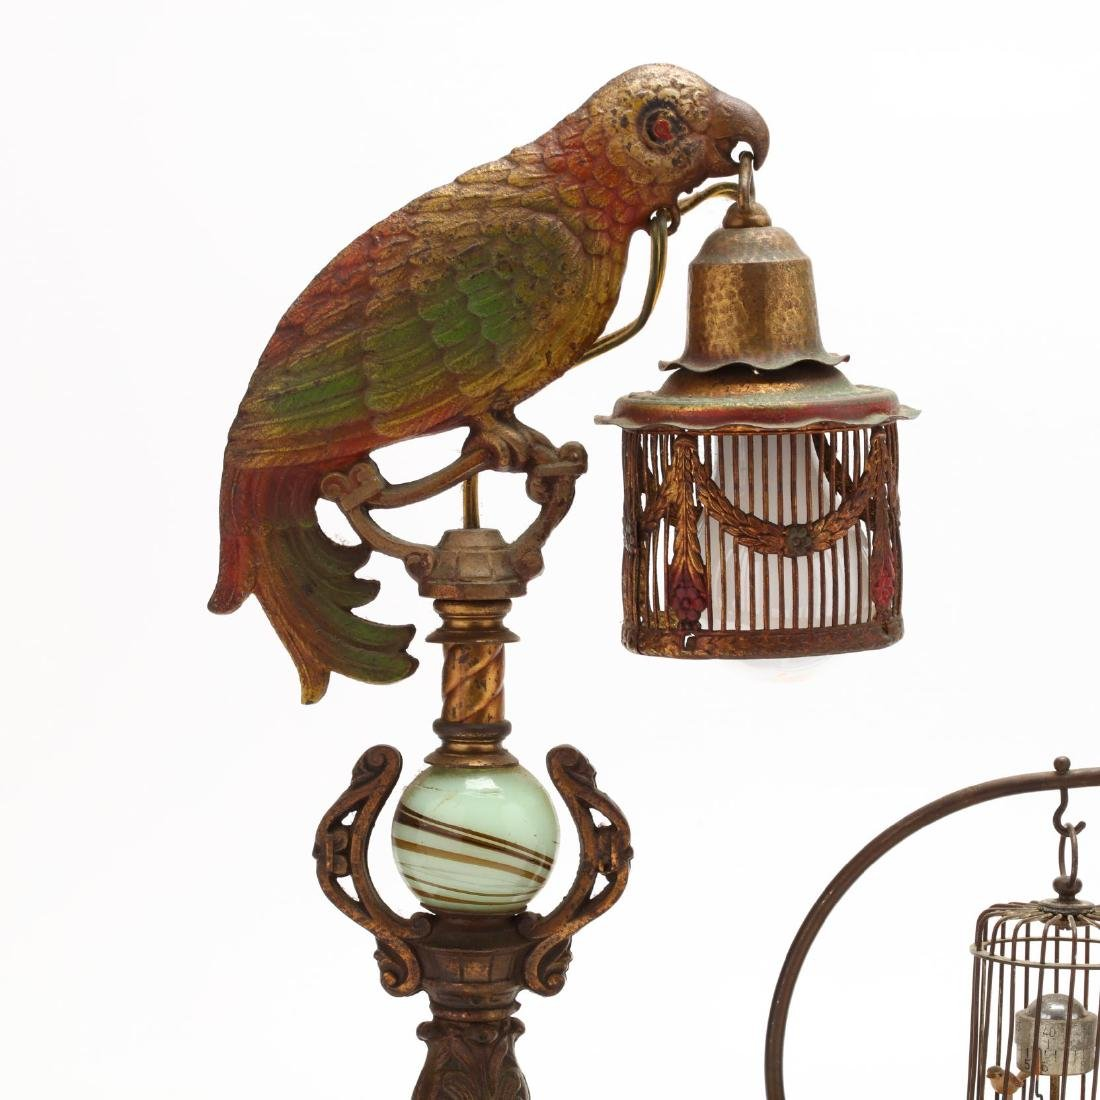 Pair of Art Deco Parrot Boudoir Lamps and an Automaton - 3